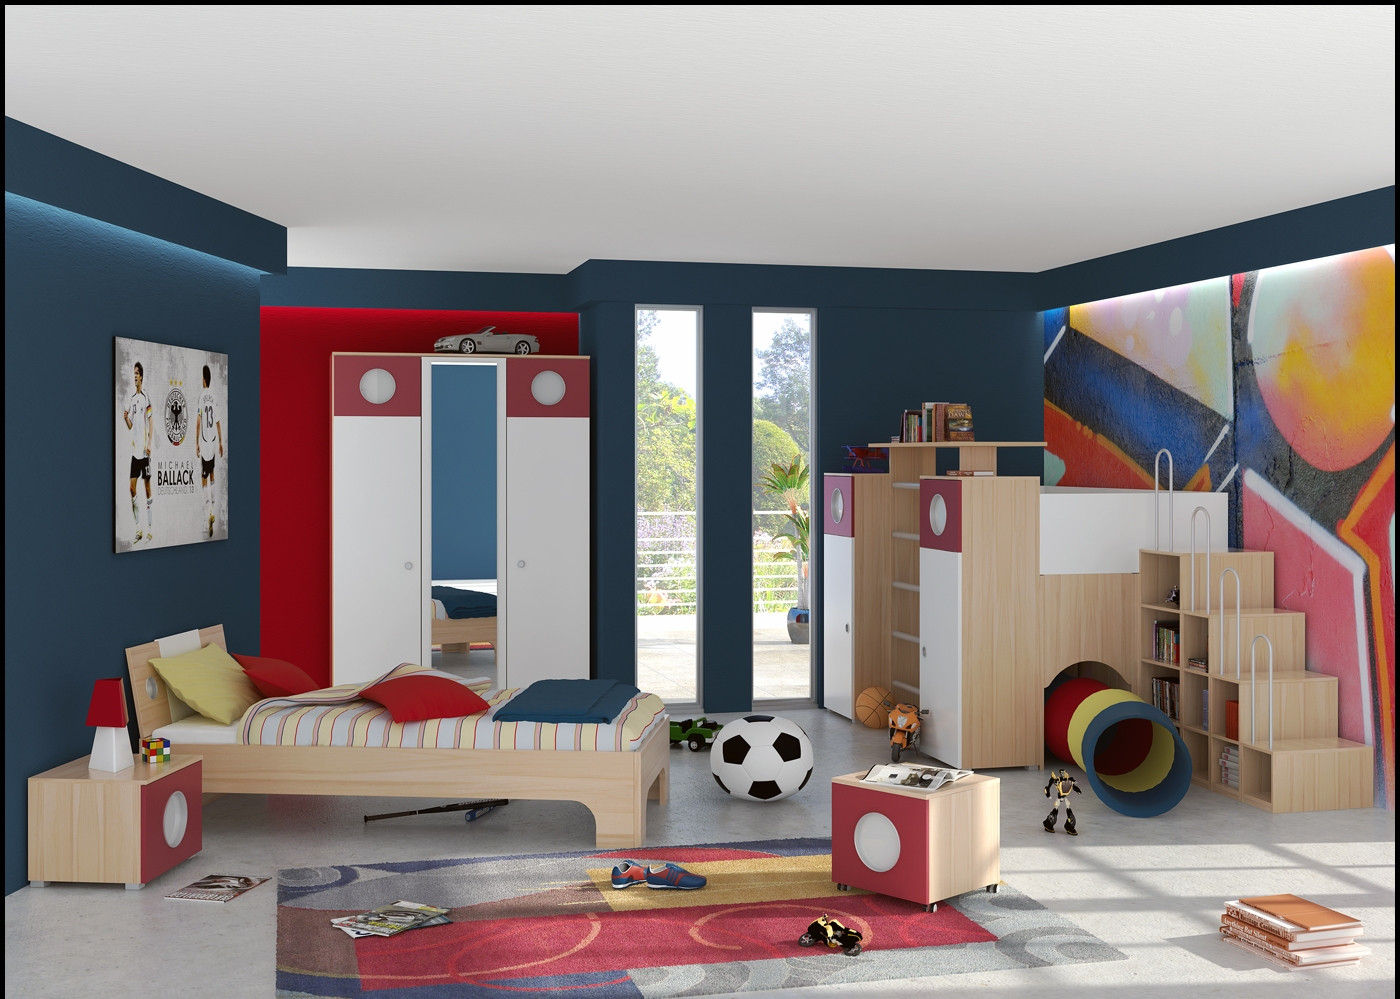 Best ideas about Kids Room Ideas Boy . Save or Pin s Various Modern Kids Room Inspirations beautiful Now.